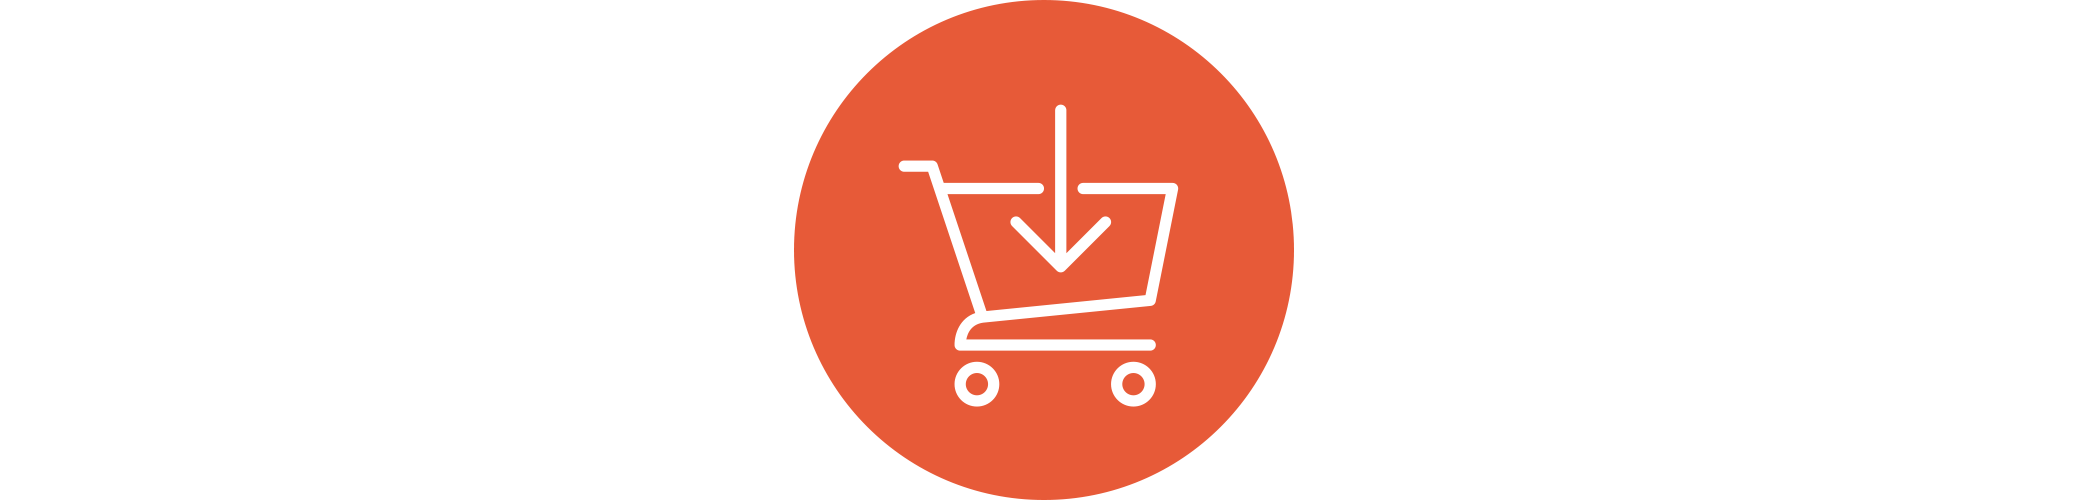 A shopping cart icon with an arrow pointing down into the basket